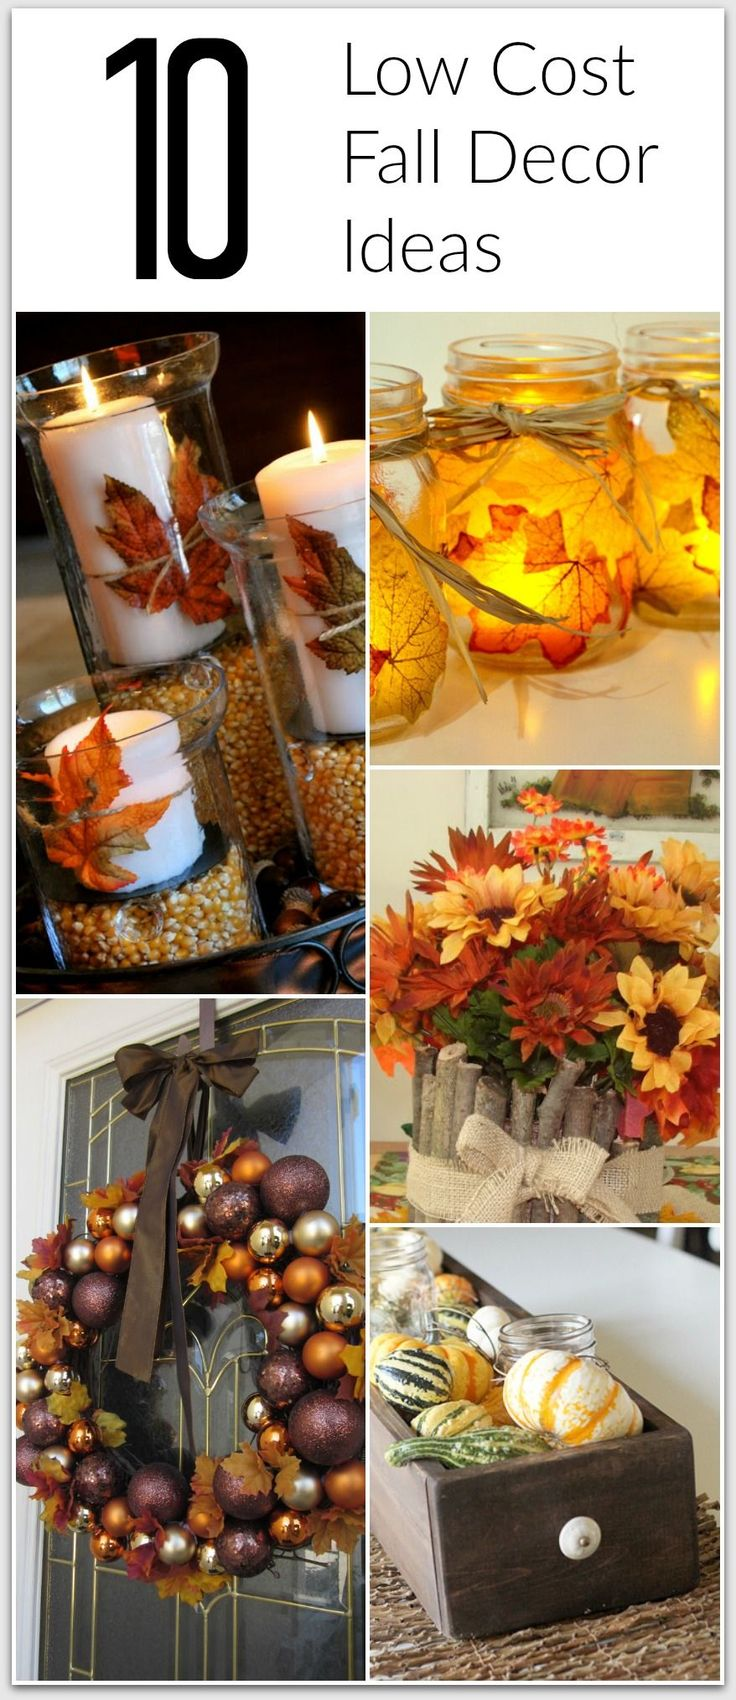 10 Great Fall Decor Ideas that are low cost, and only take a few minutes!   This website has hundreds of other DIY tutorials for the home.  CLICK for more holiday inspiration..